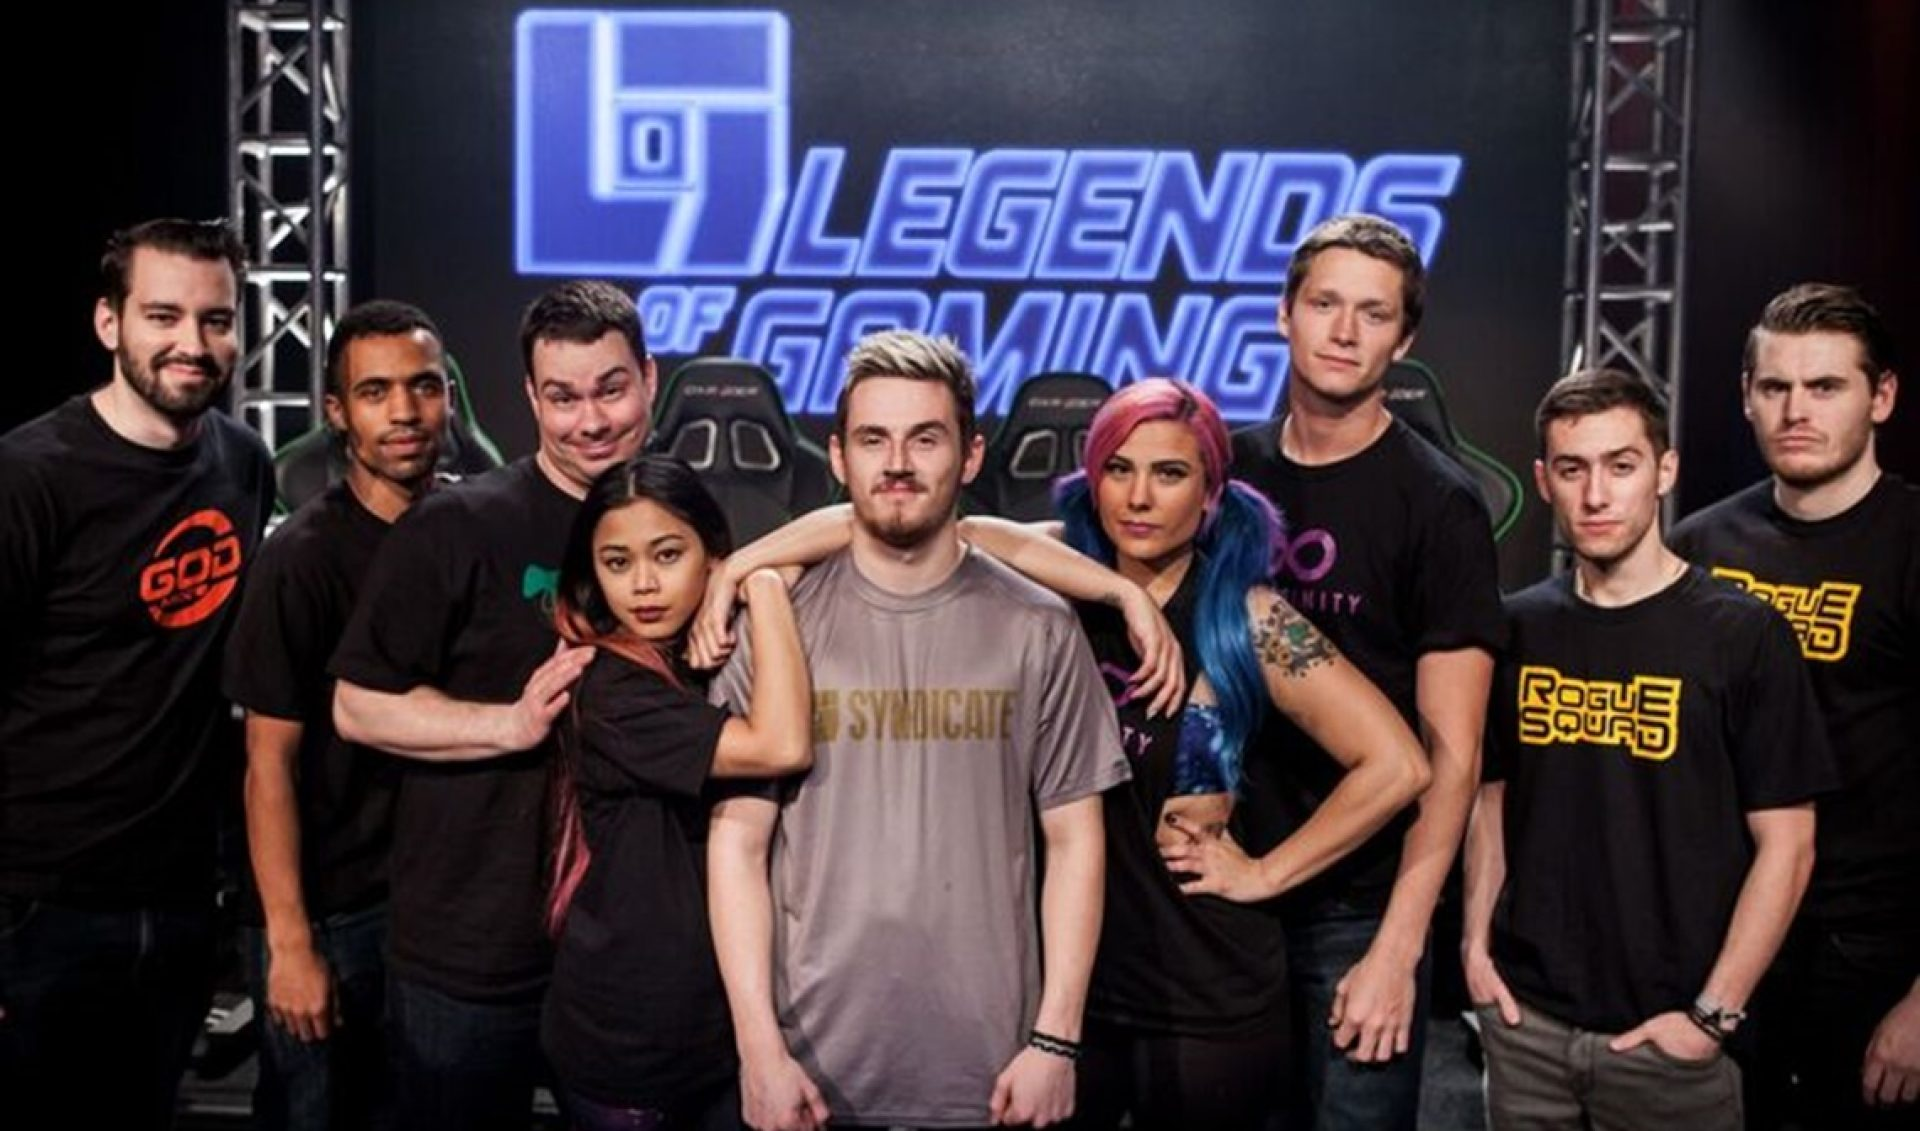 Endemol Beyond And Mashable Ink Distribution Pact For 'Legends Of Gaming', Others